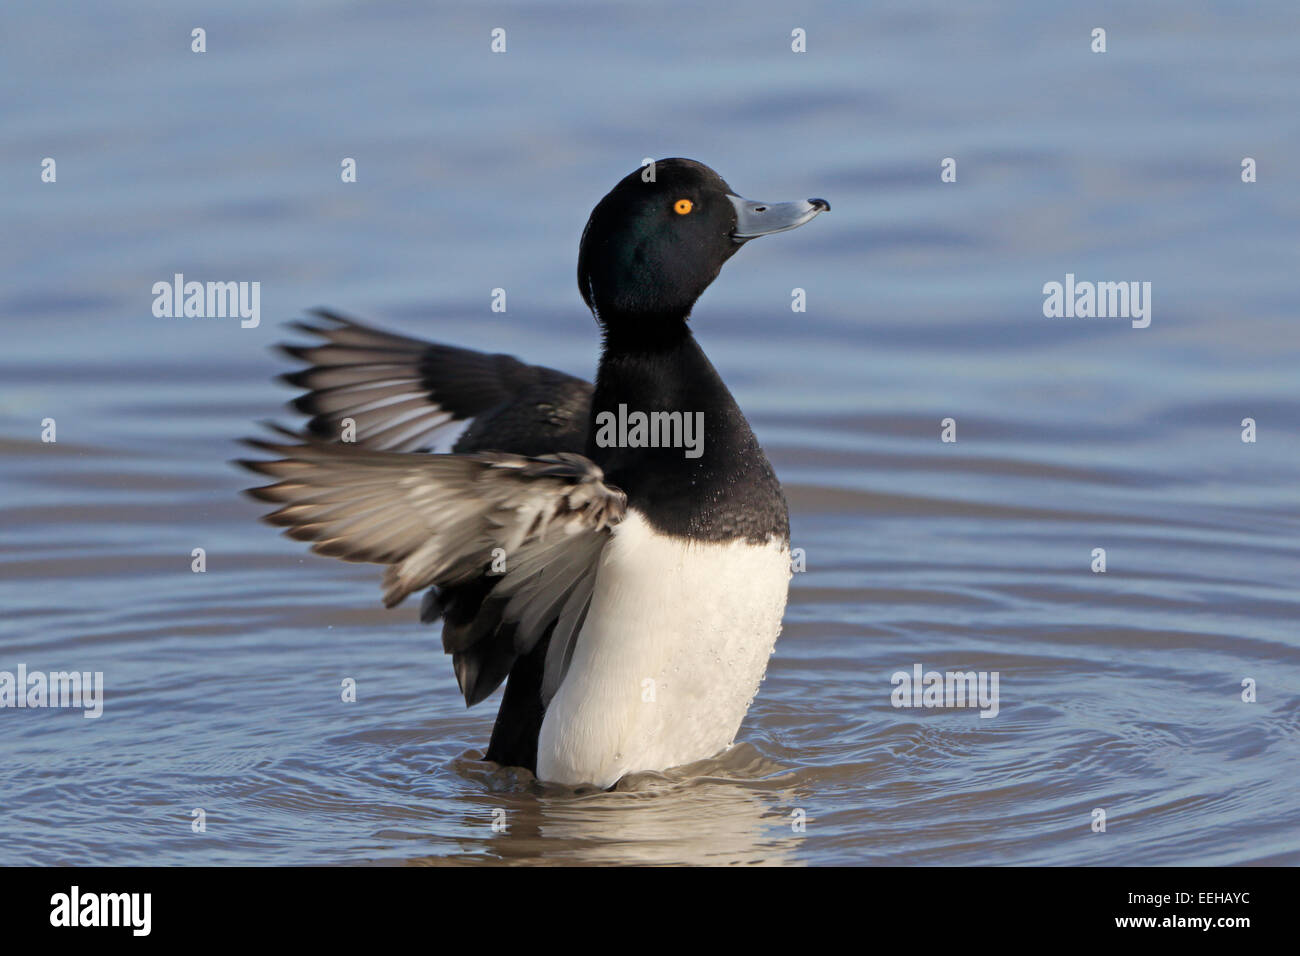 Male Tufted Duck flapping its wings - Stock Image